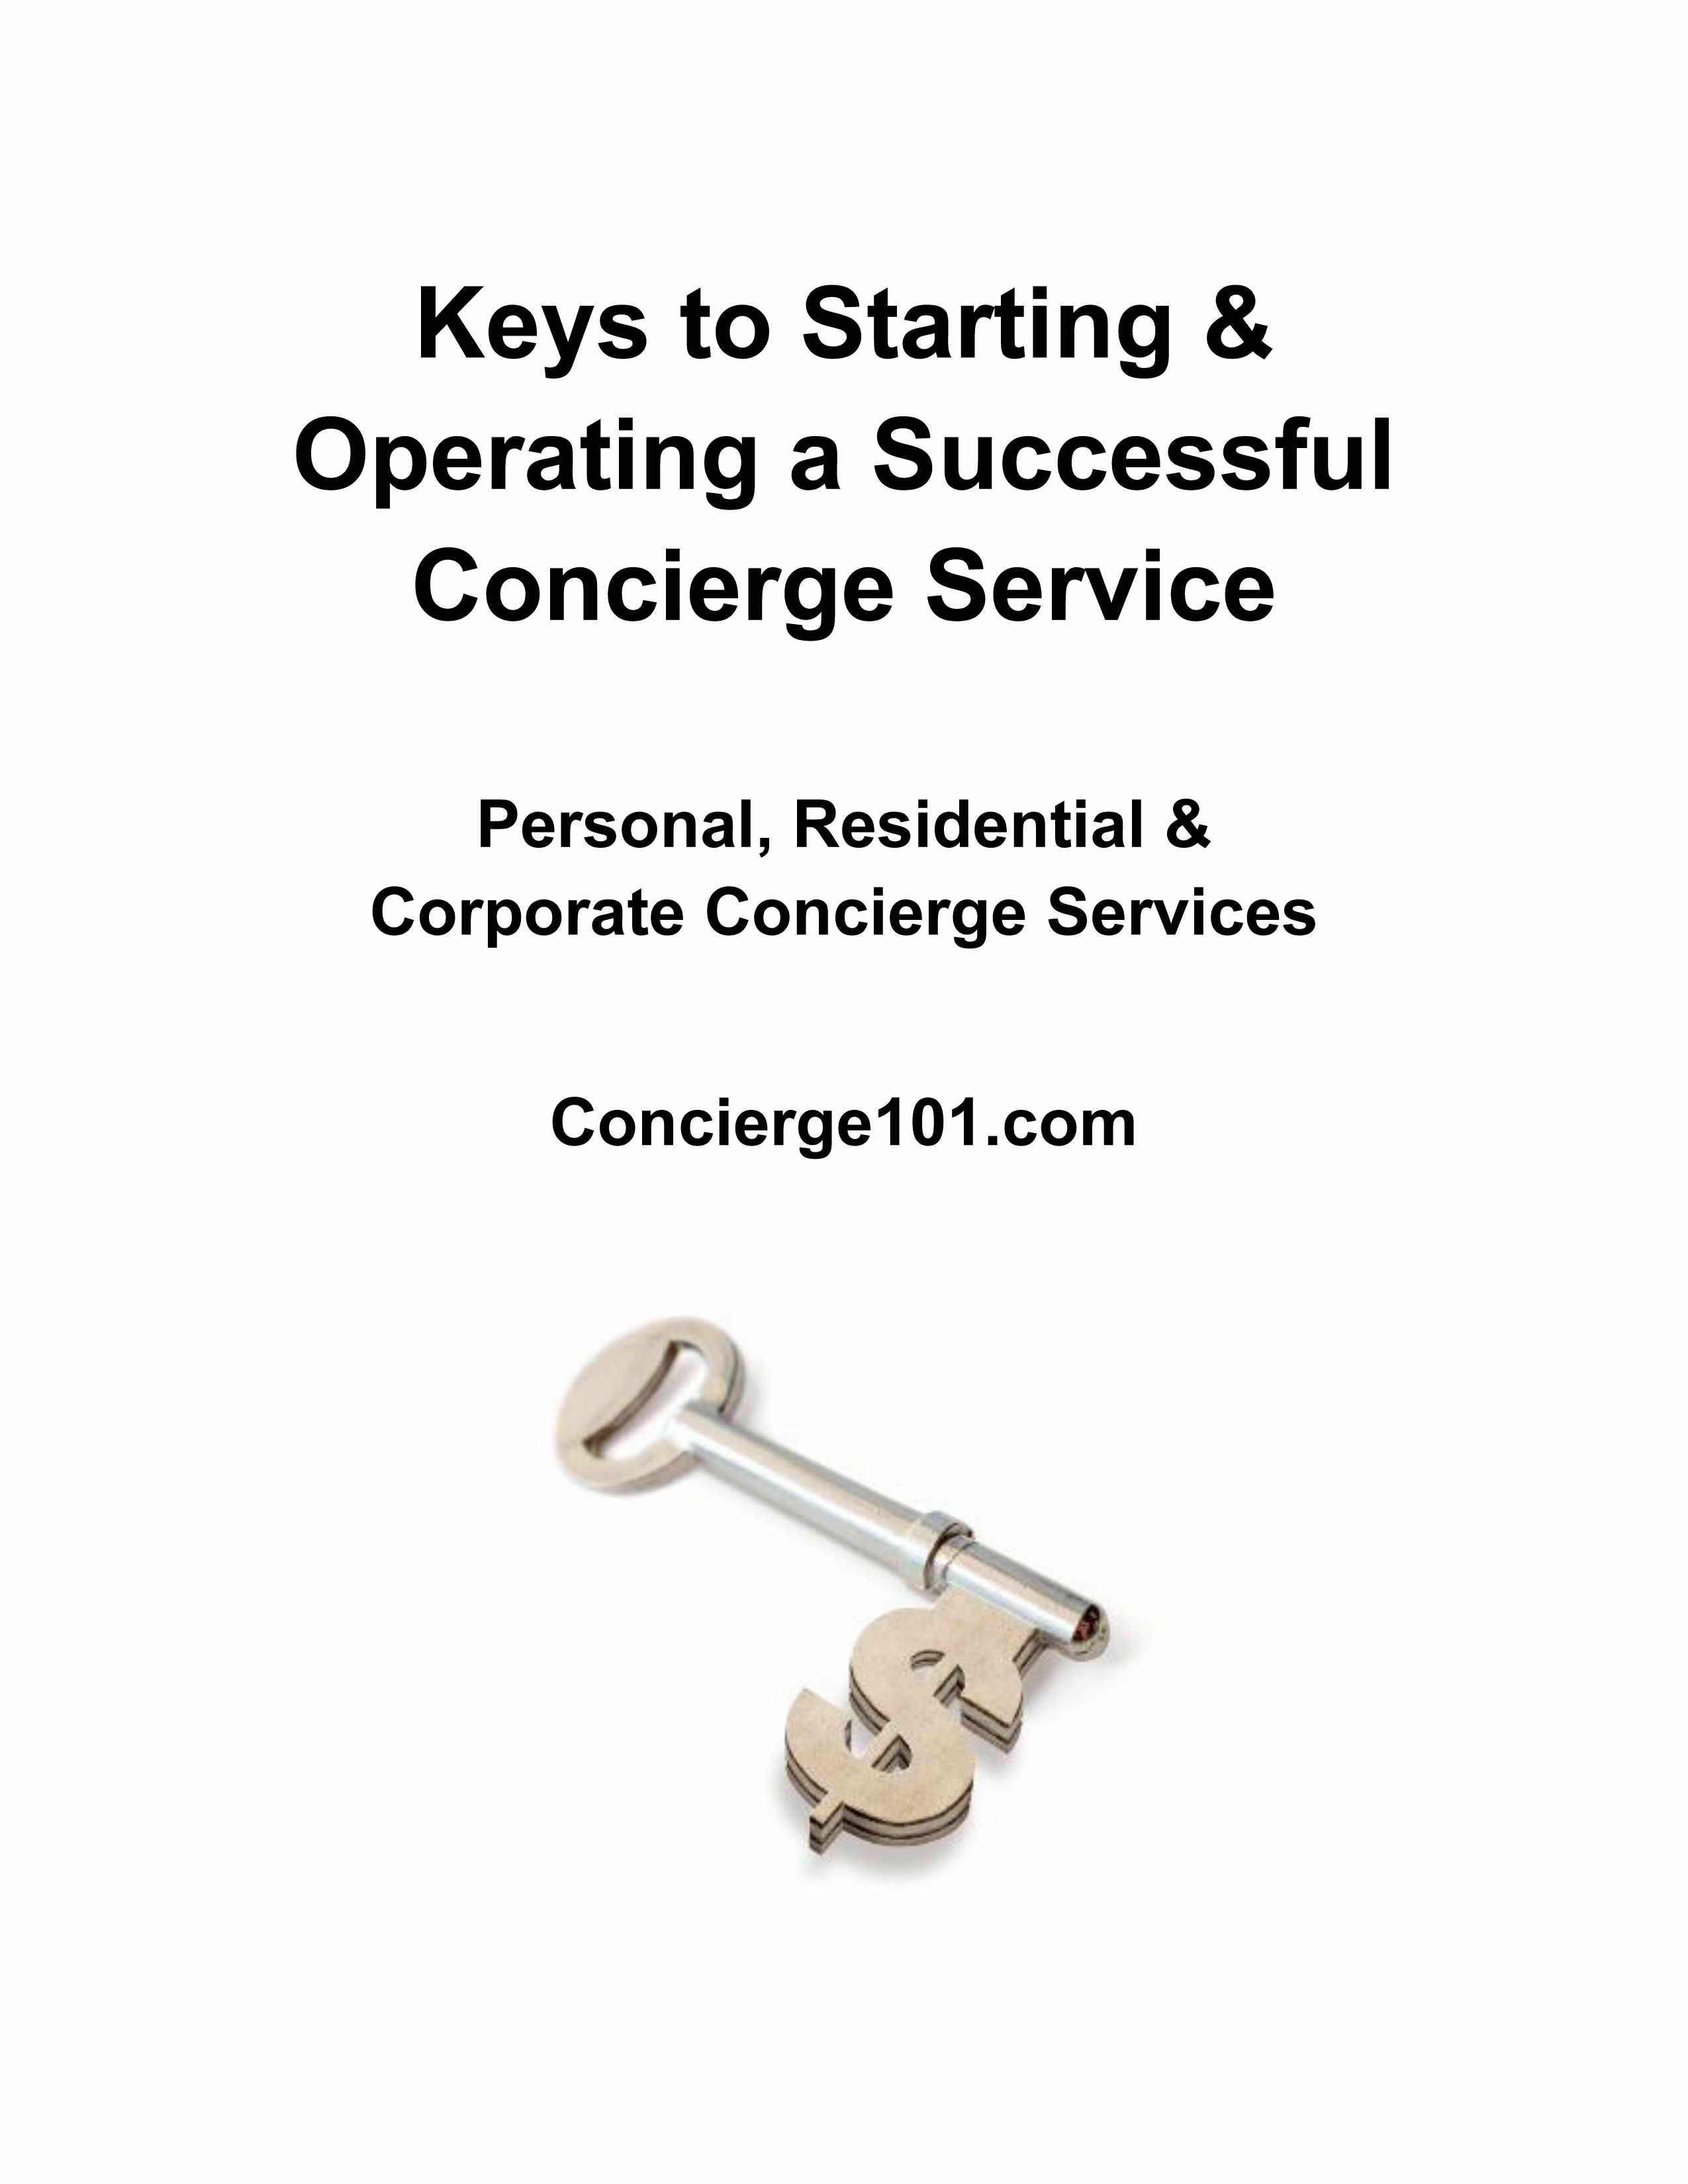 How to Start a Concierge Business or Errand Service - Find Clients ...